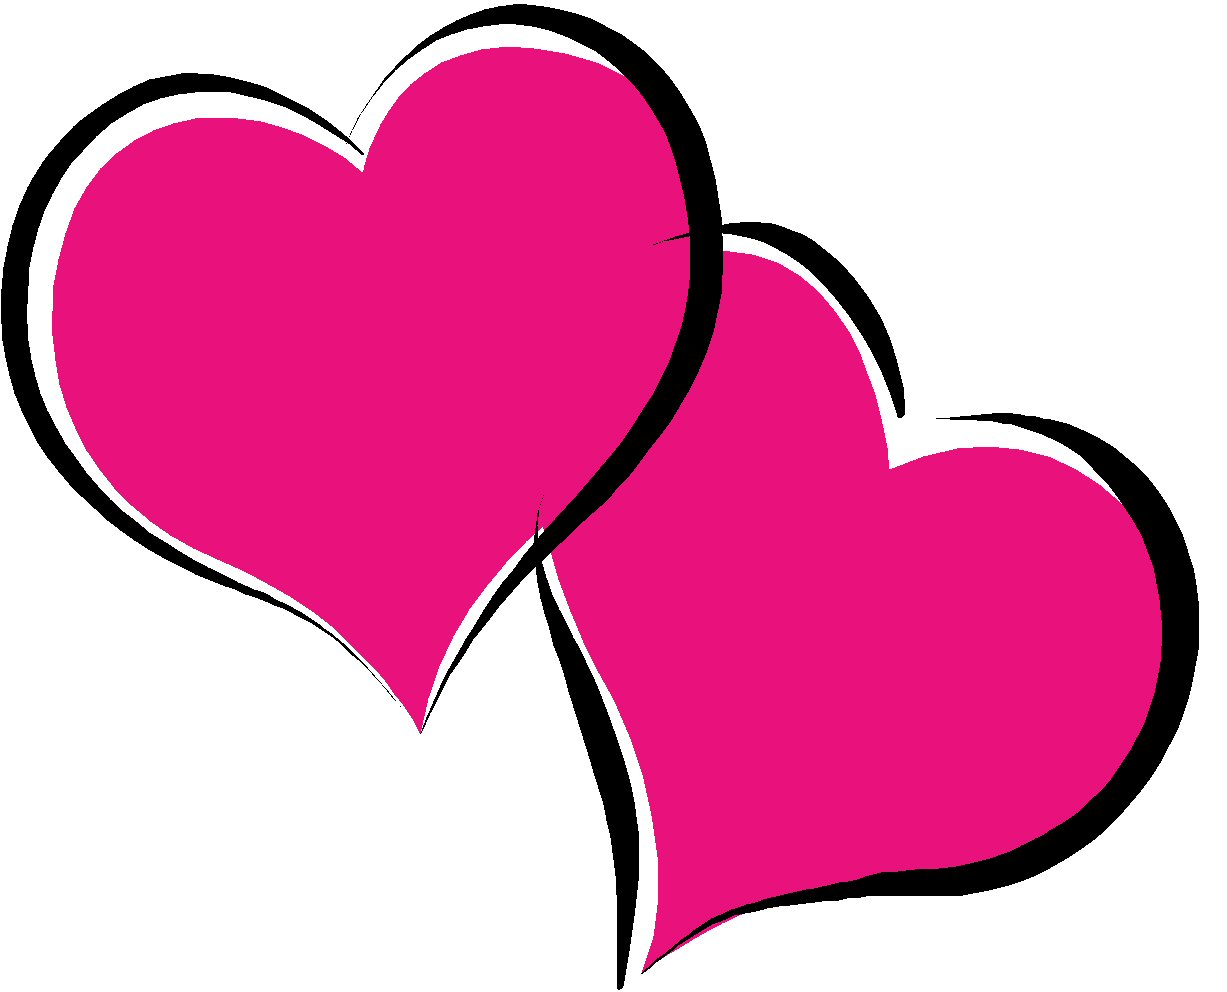 Hot pink clipart